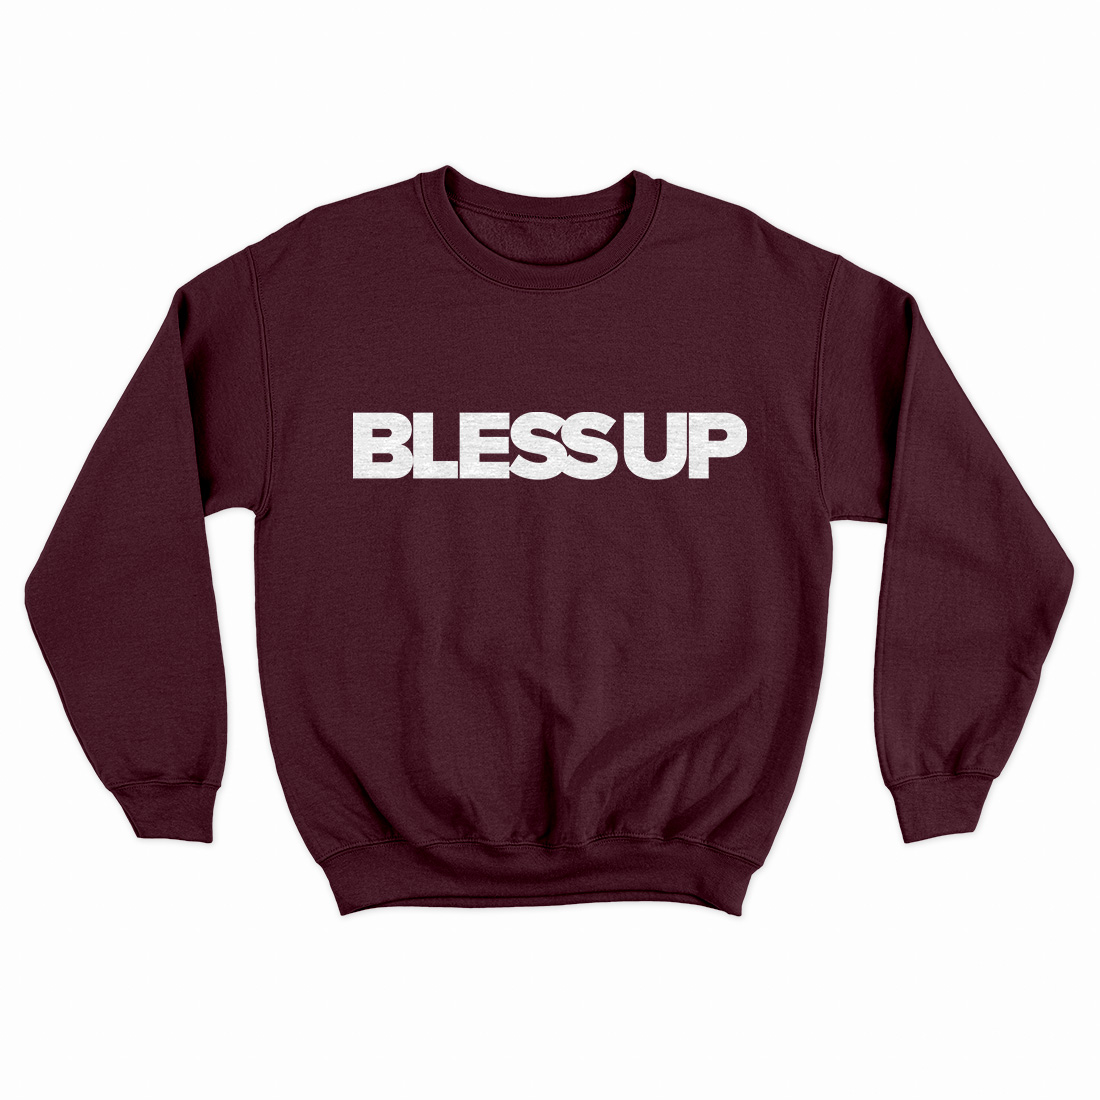 Bless Up (Maroon)